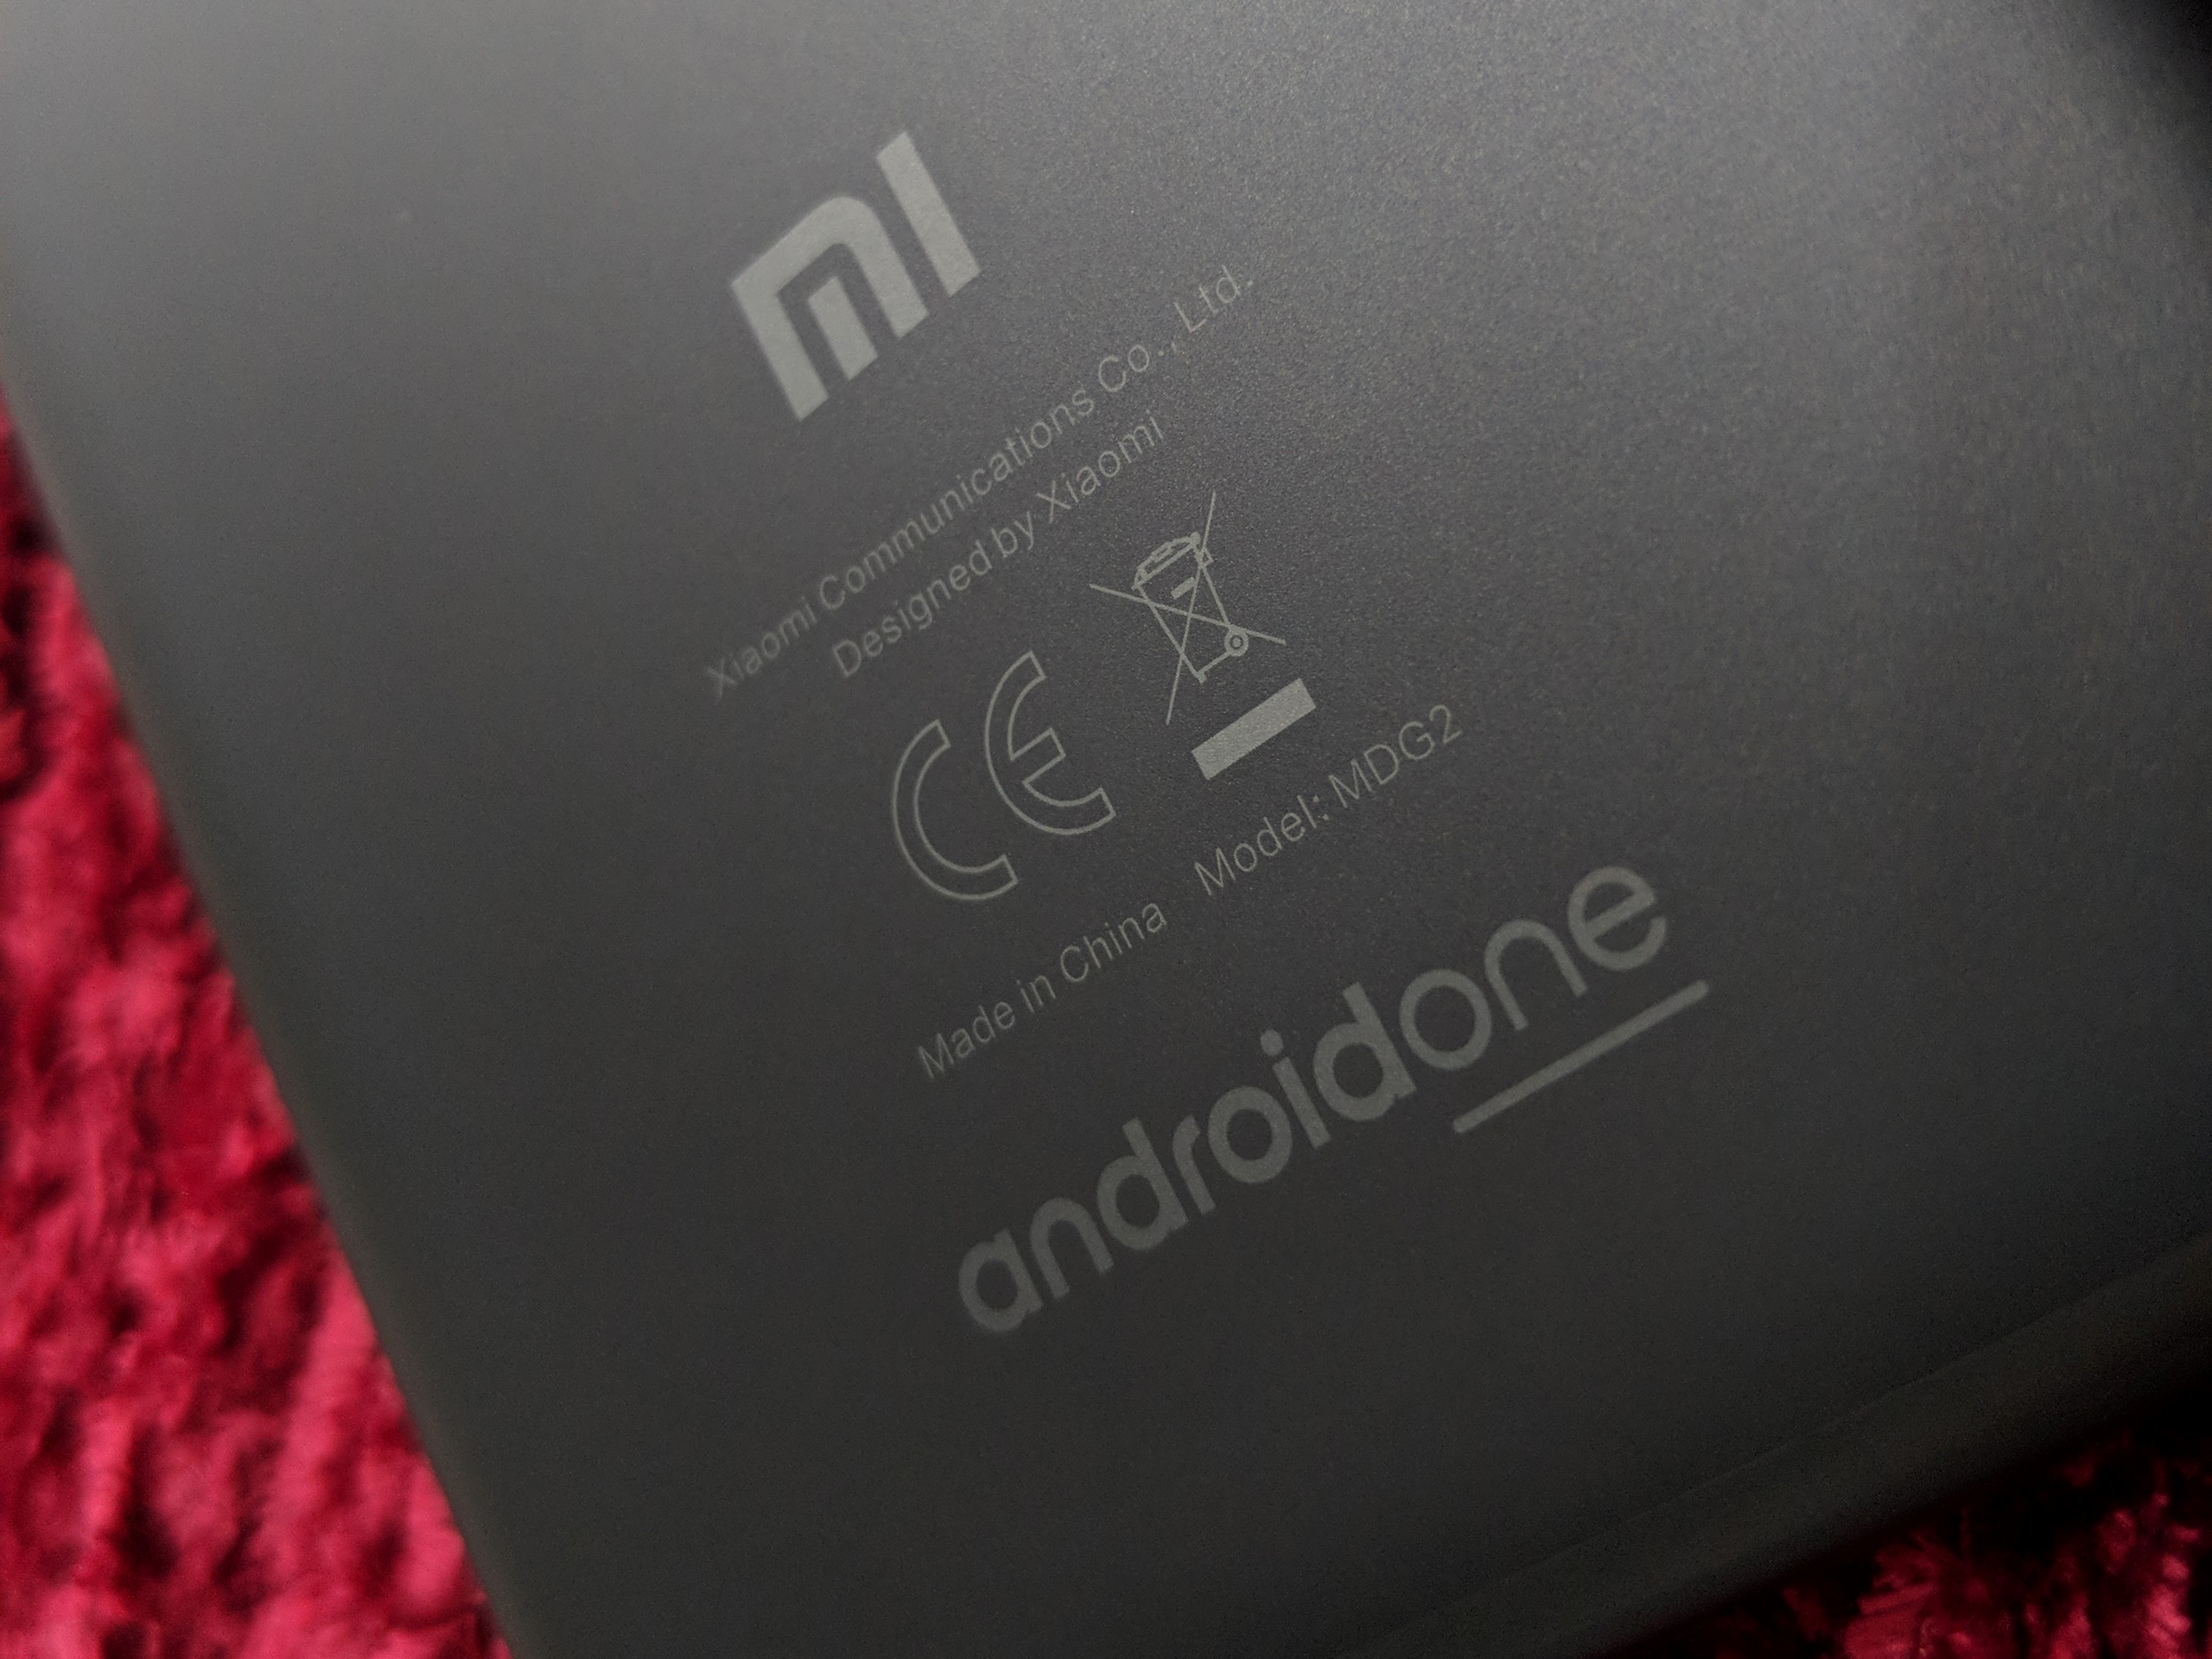 Xiaomi Mi A1 second take: For $215, it offers the best value of any